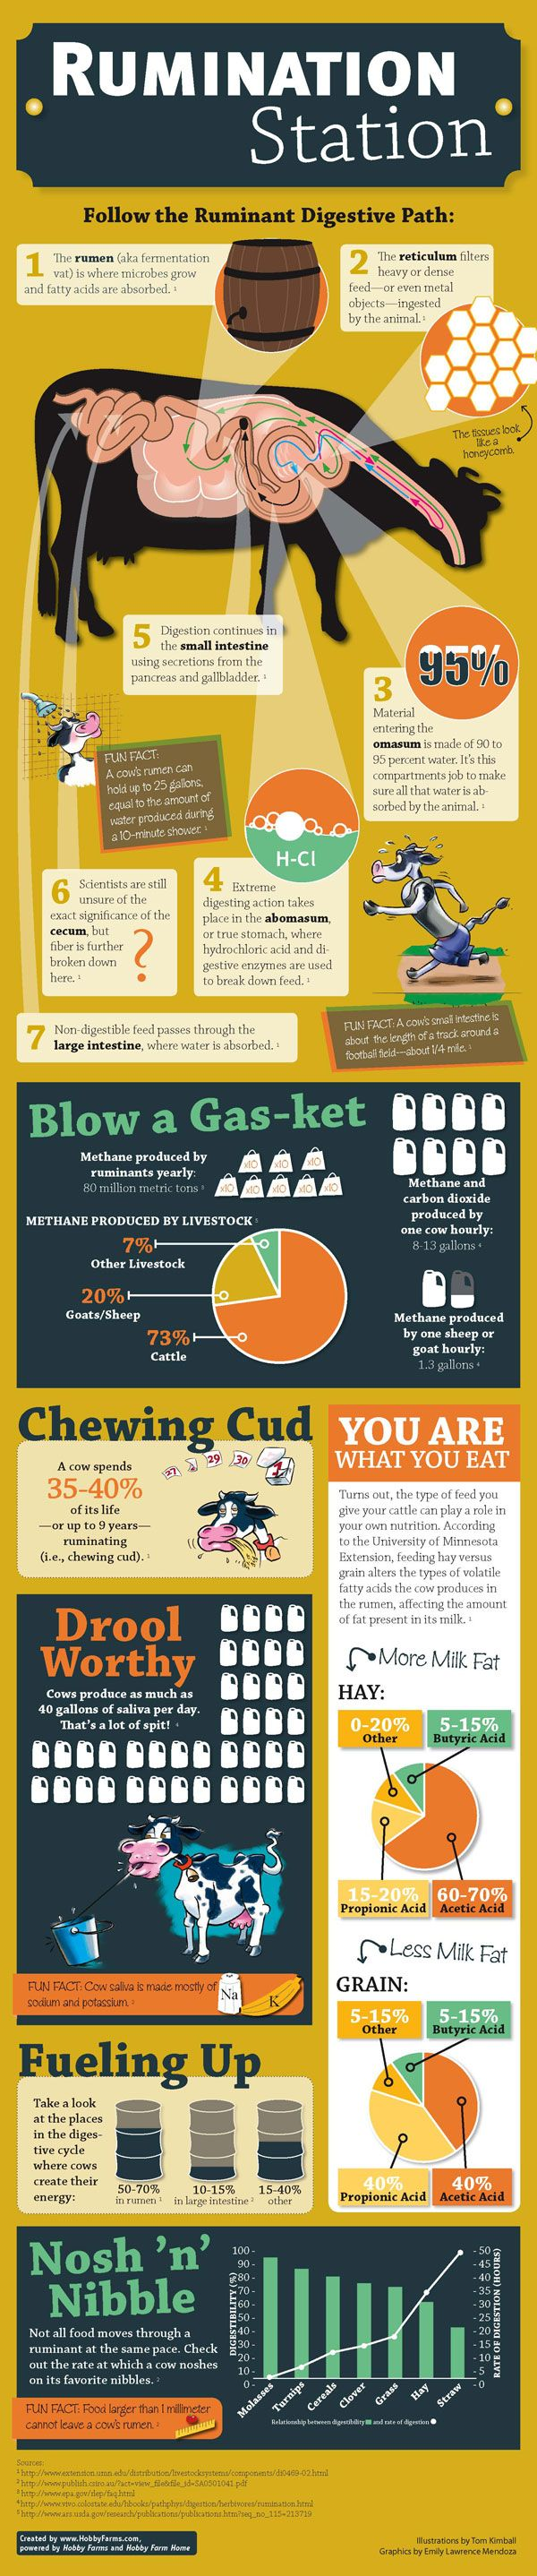 Take a look inside the complex stomachs of cows, sheep, goats and other ruminant livestock. - infographic